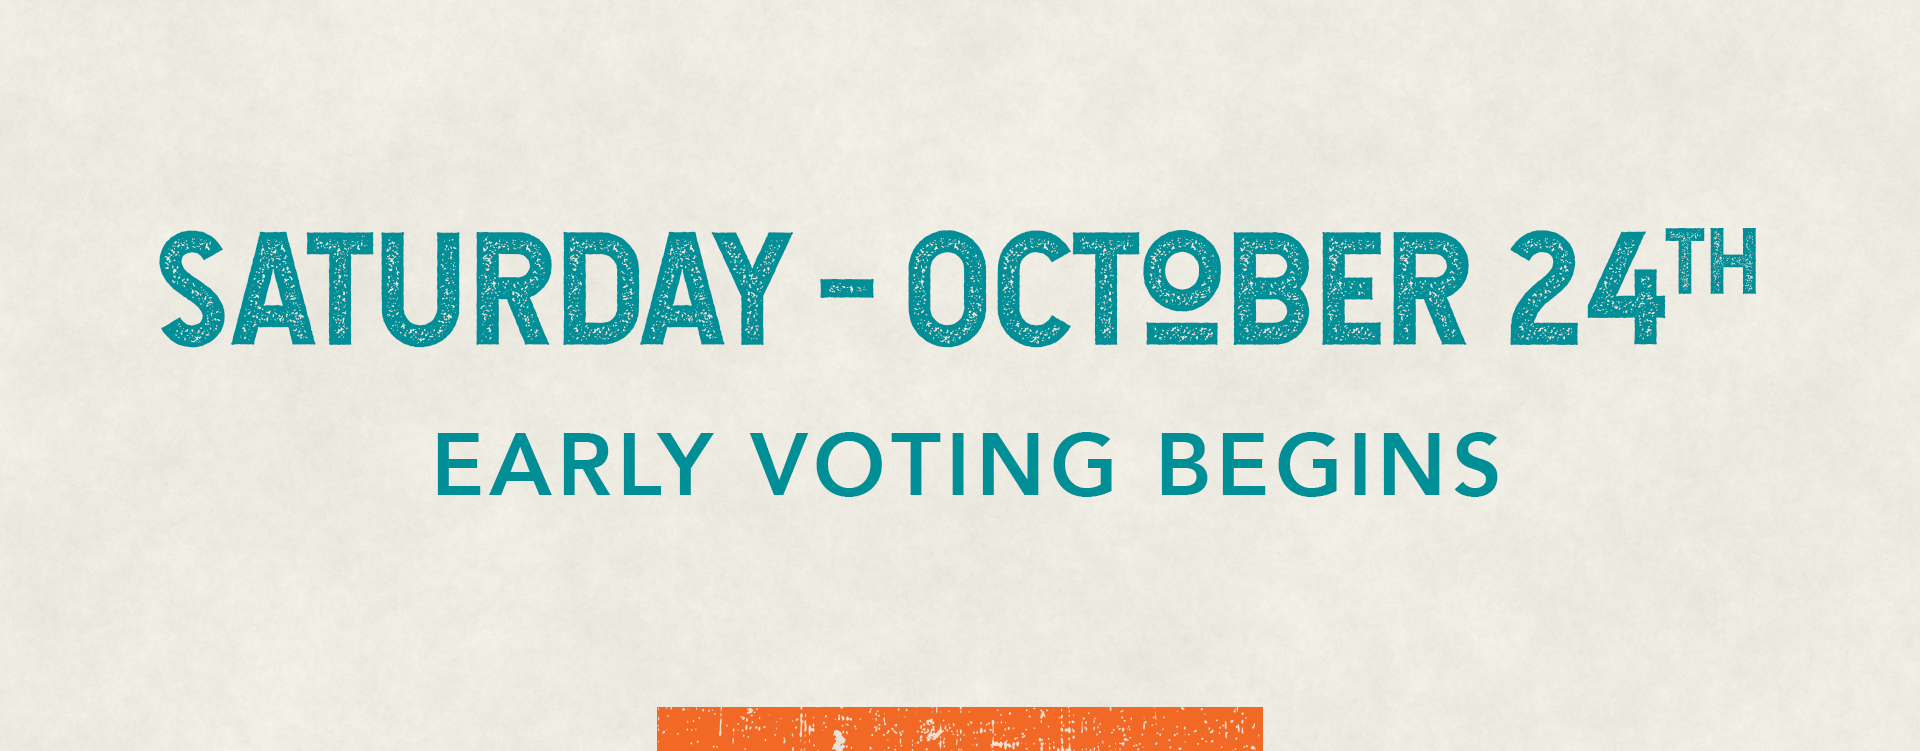 Graphic: Saturday October 24th - Early Voting Begins